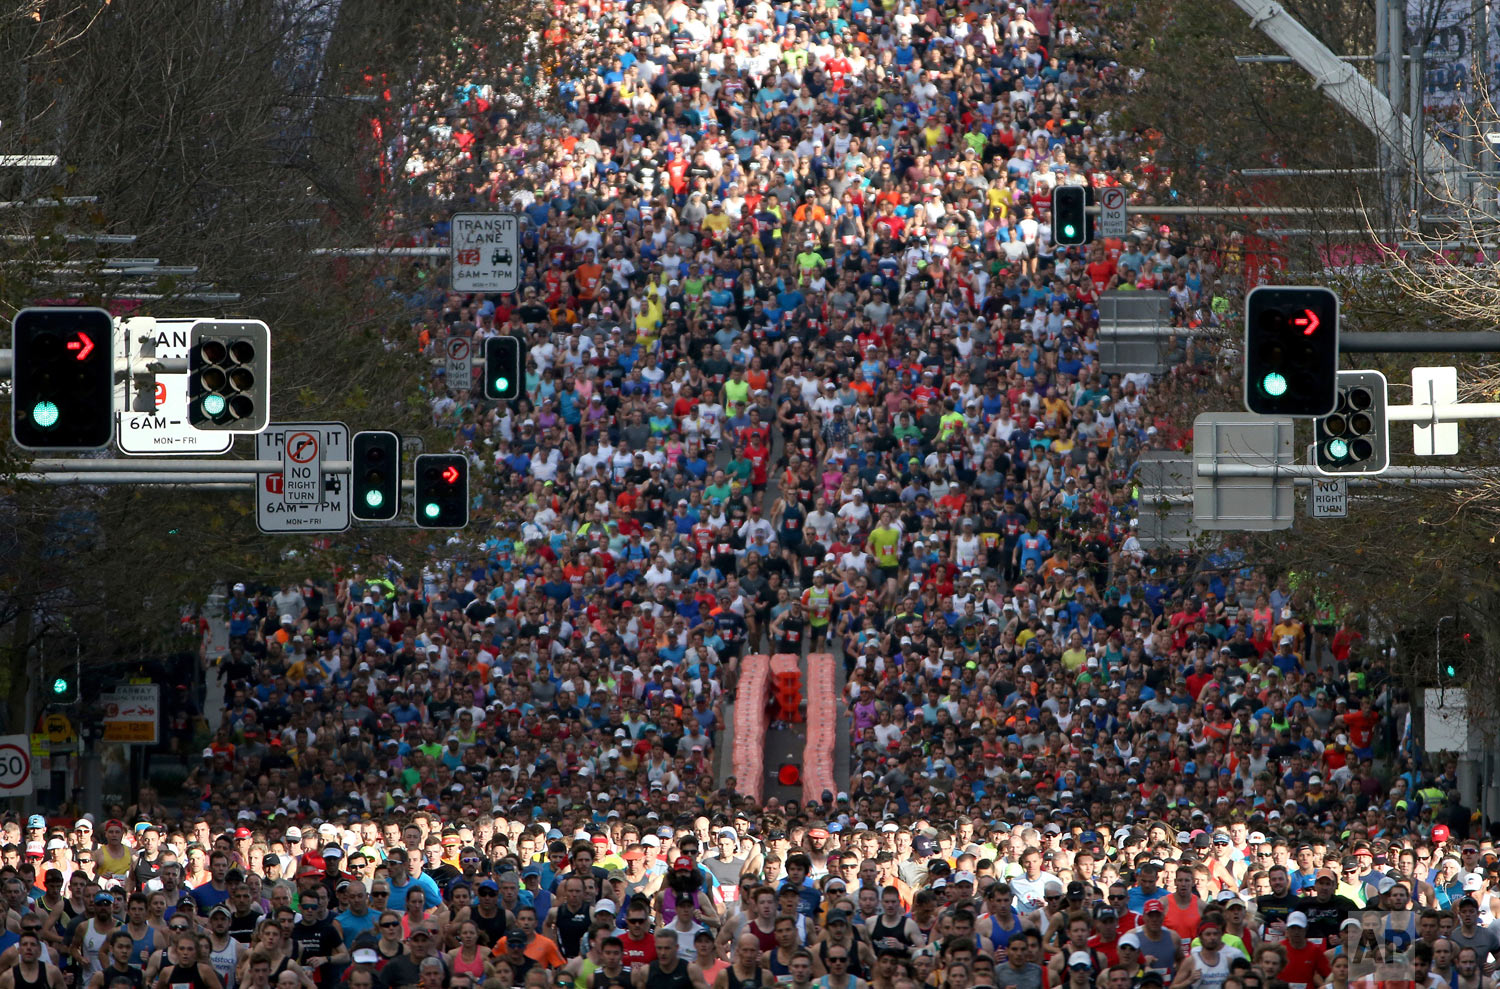 Some 80,000 participants in the annual City2surf fun run make their way along the 14 kilometers (8.7 miles) course in Sydney Sunday, Aug. 12, 2018. (AP Photo/Rick Rycroft)